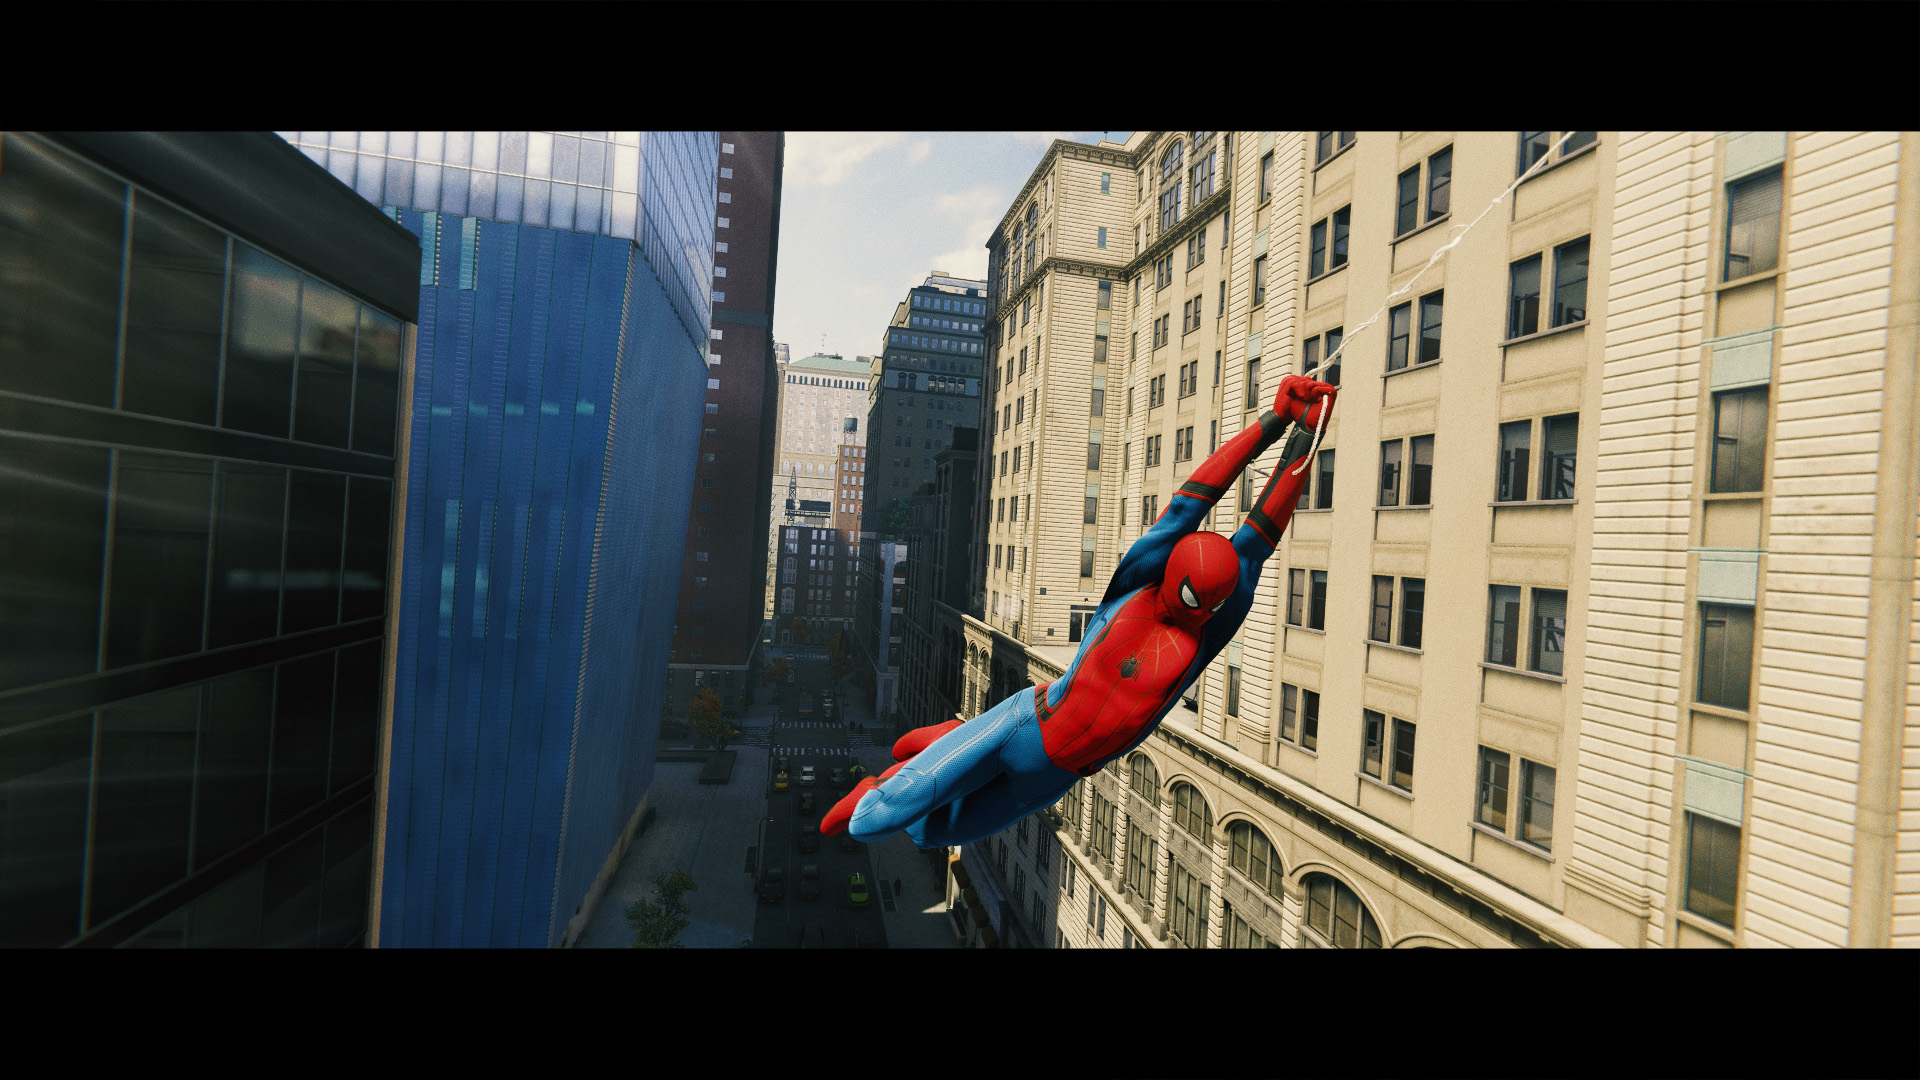 Spider-Man PS4's Photo Mode Lets You Create Comic Covers and Film